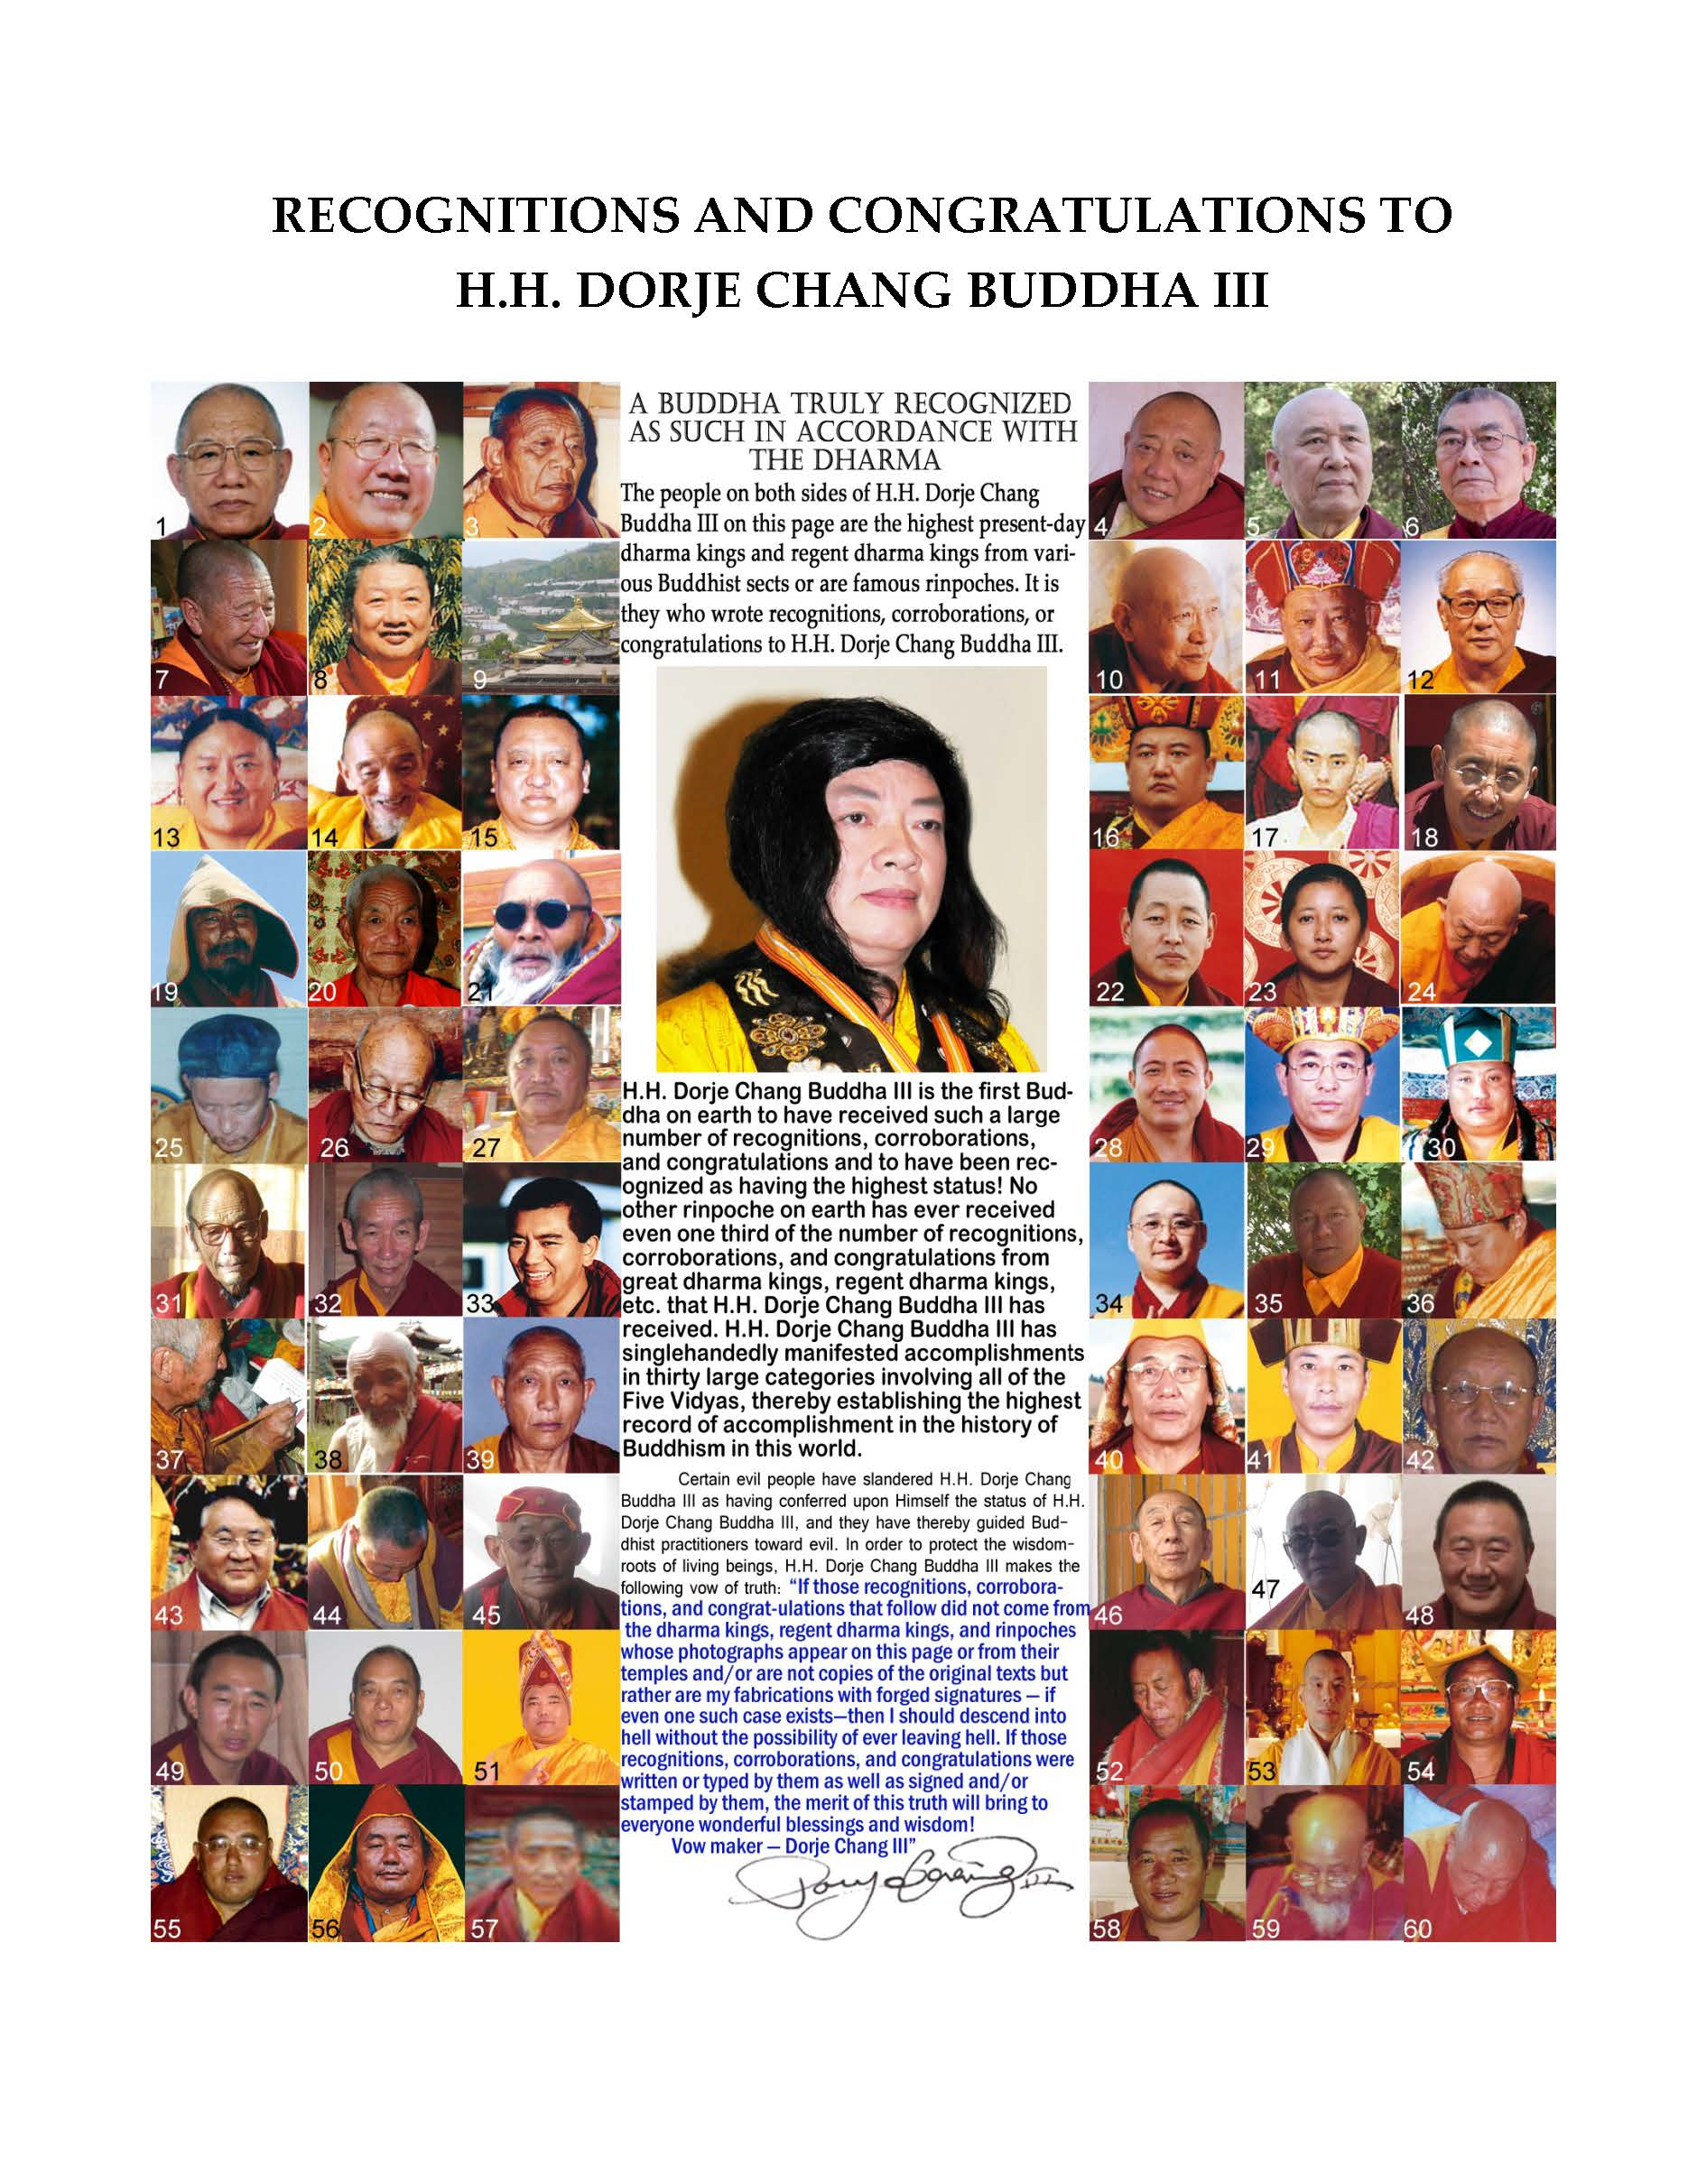 Recognitions & Congratulations to H.H. Dorje Chang Buddha III